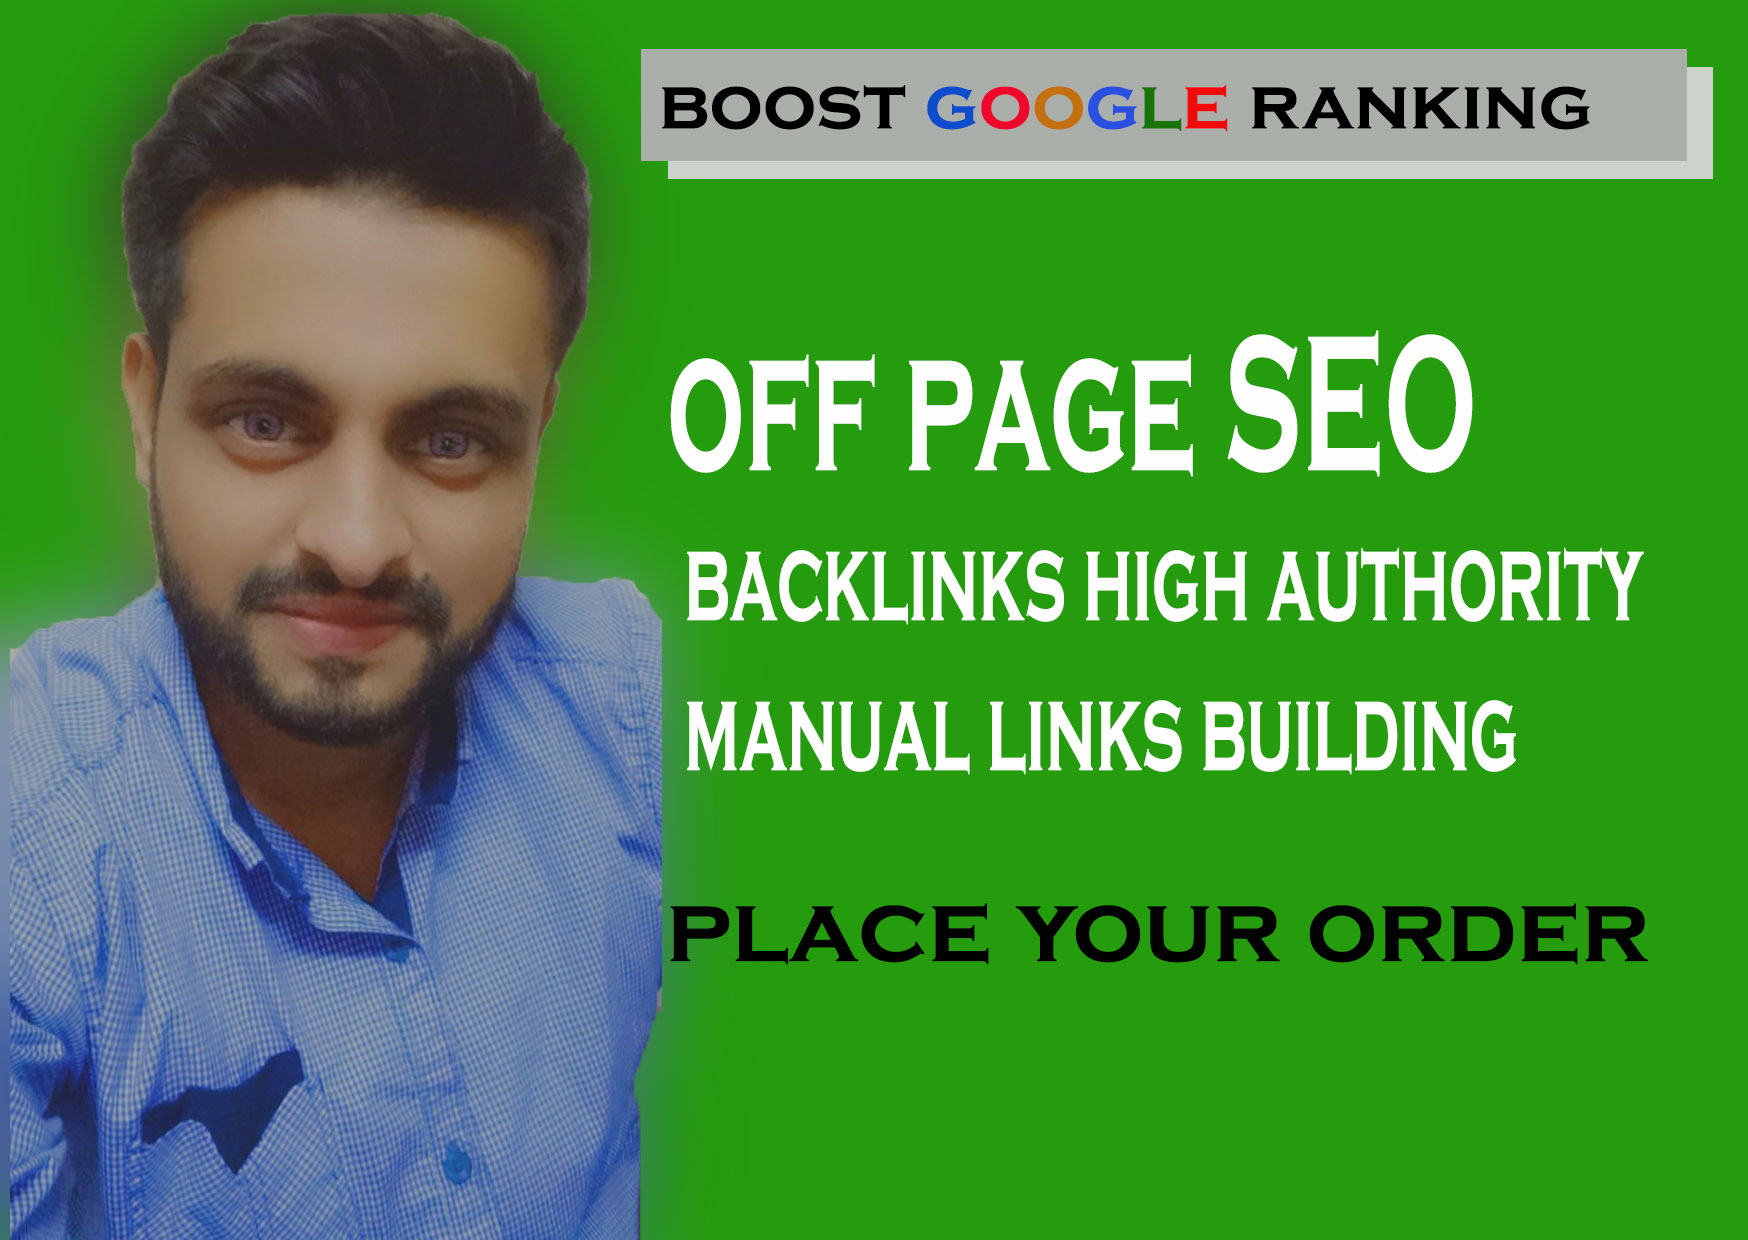 rank your site with off page SEO dofollow, high authority manual links building,  contextual backlinks